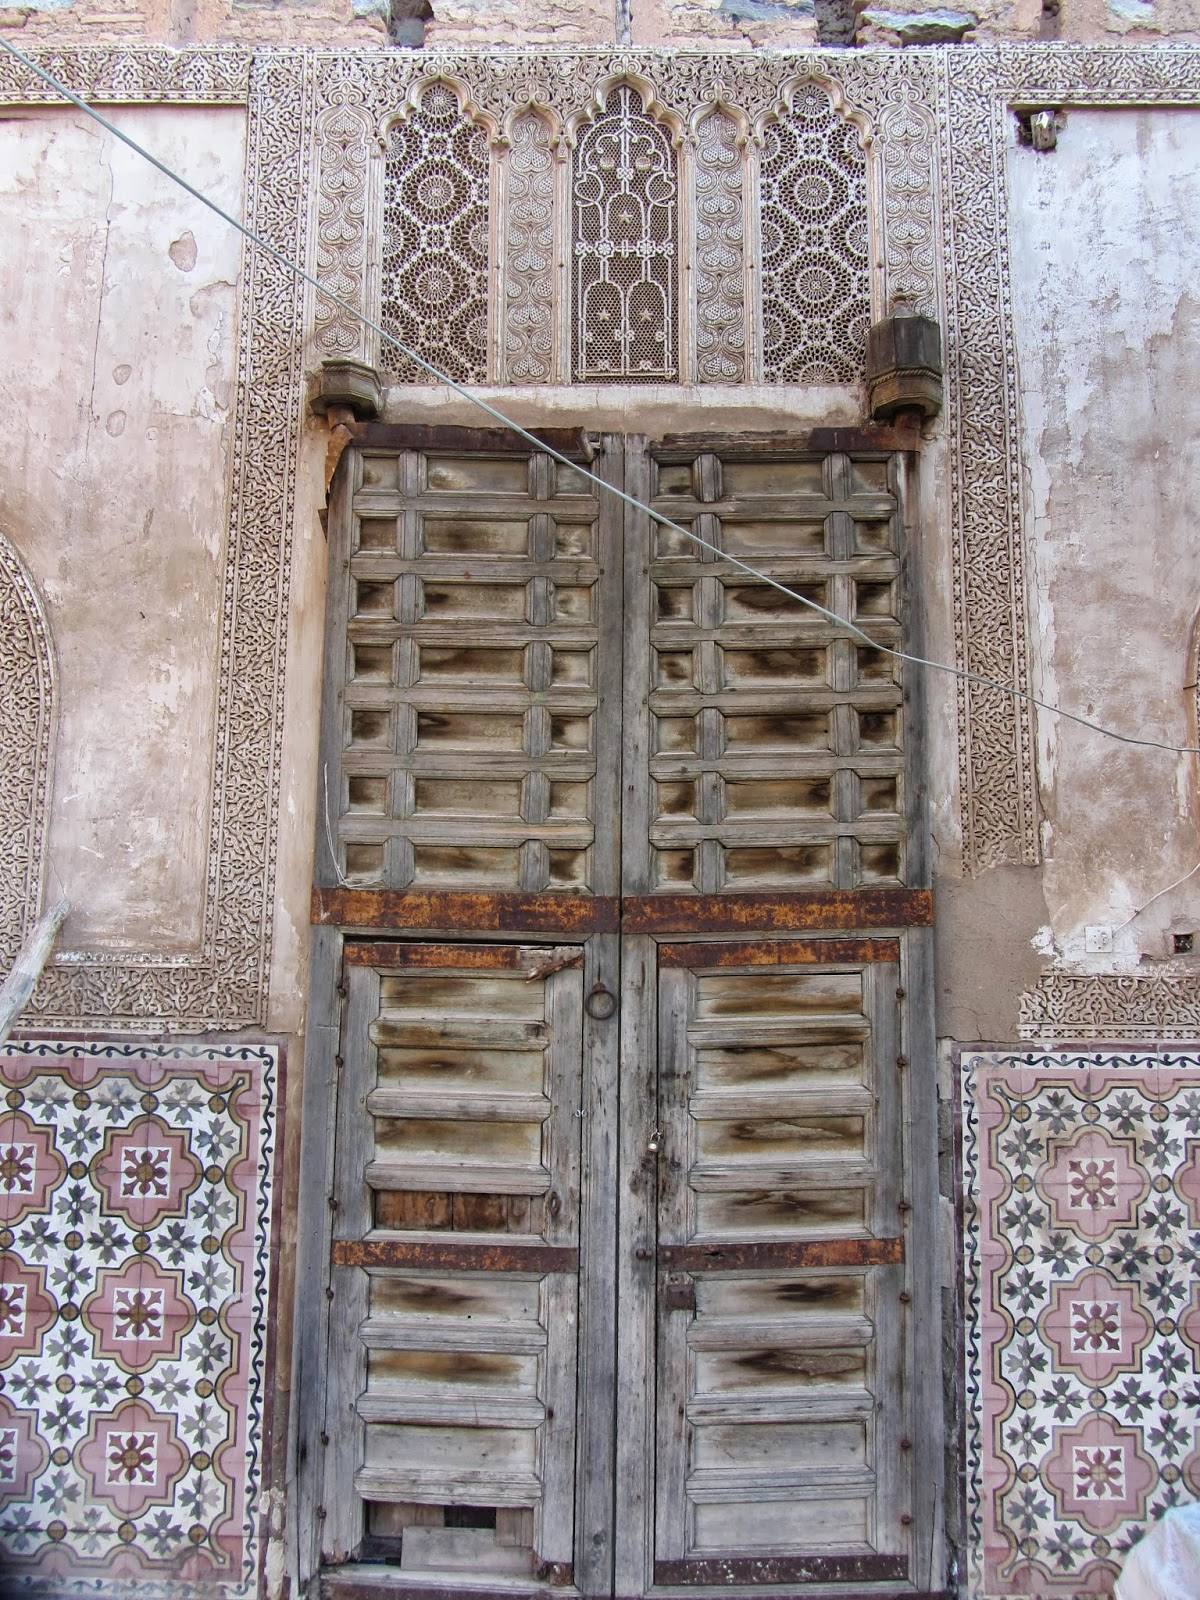 Plaster detailing around a antique Moroccan door - Buying Antique Moroccan Doors At The Marrakech Flea Market - Bab El